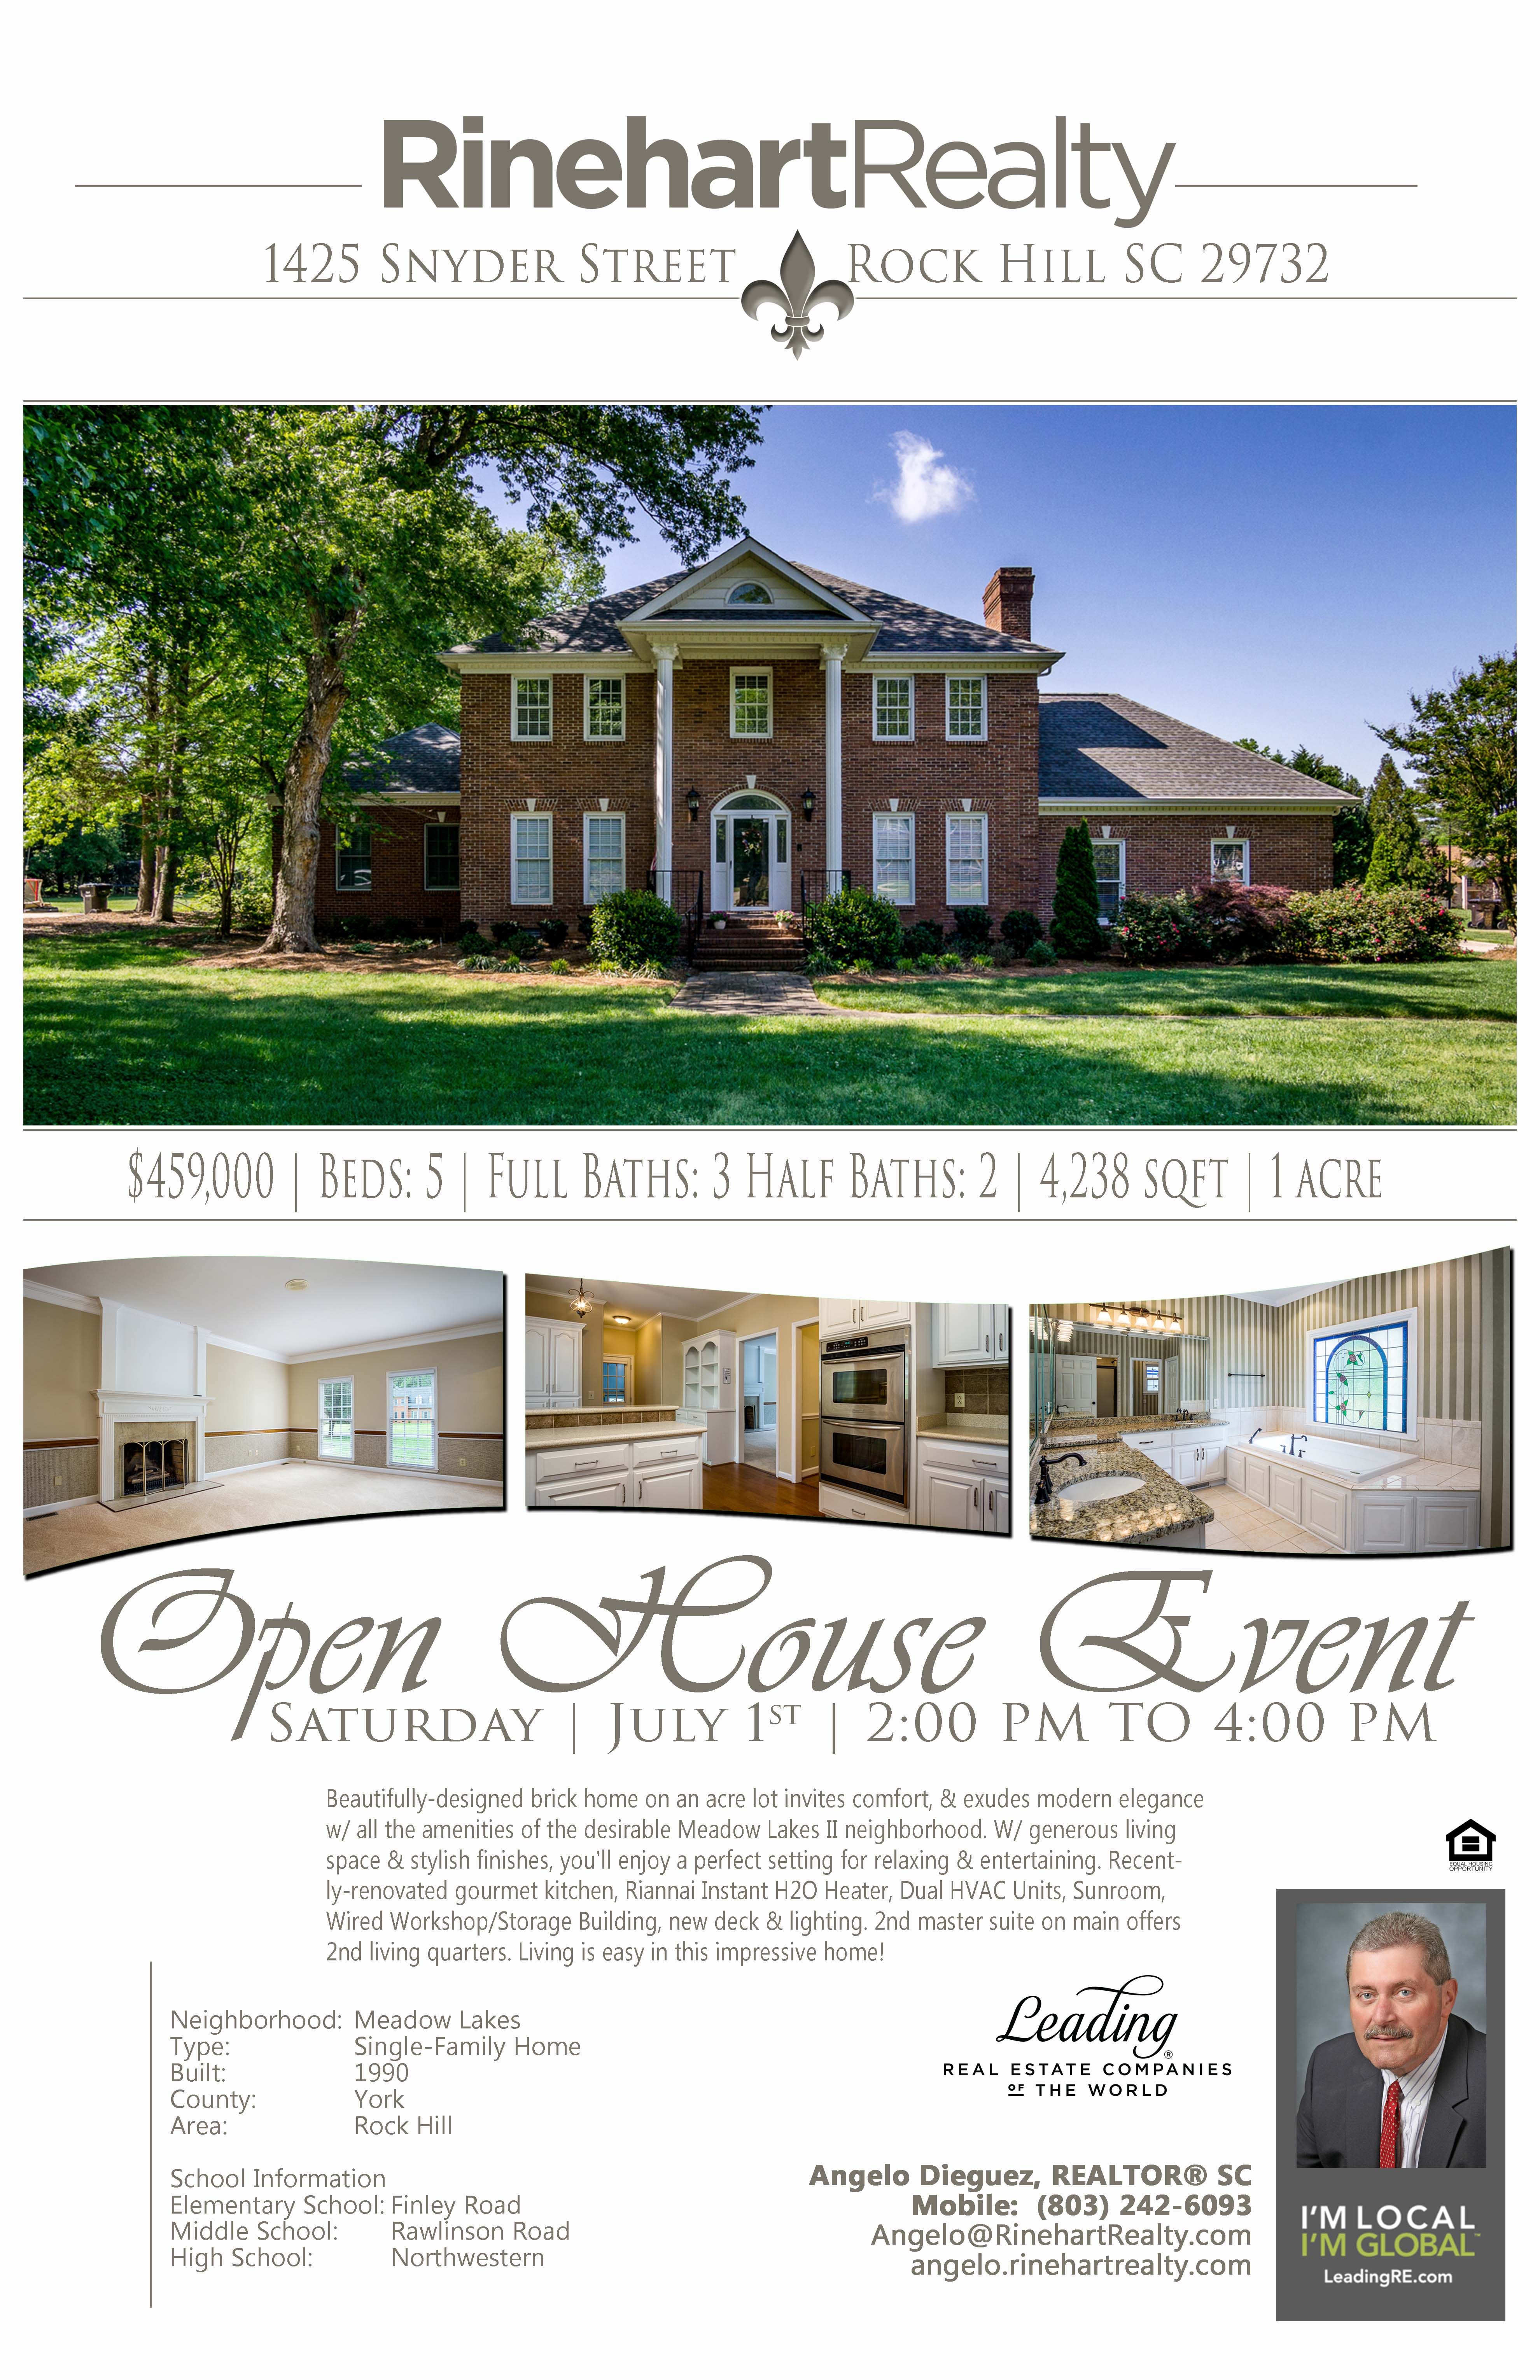 OPEN HOUSE: Saturday, July 1st | 2:00 pm to 4:00 pm  1425 Snyder Street, Rock Hill, SC 29732 PRICE: $459,000 Beds: 5 | Full Baths: 3 Half Baths: 2 | 4,238 sqft | 1 acres  Beautifully-designed brick home on an acre lot invites comfort, and exudes modern elegance with all the amenities of the desirable Meadow Lakes II neighborhood. With generous living space and stylish finishes, you'll enjoy a perfect setting for relaxing and entertaining. Recently-renovated gourmet kitchen, Riannai Instant H2O Heater, Dual HVAC Units, Sunroom, Wired Workshop/Storage Building, new deck and lighting. 2nd master suite on main offers 2nd living quarters. Living is easy in this impressive home!  Hosted by:  Angelo Dieguez, REALTOR® SC Mobile: (803) 242-6093 Angelo@RinehartRealty.com angelo.rinehartrealty.com